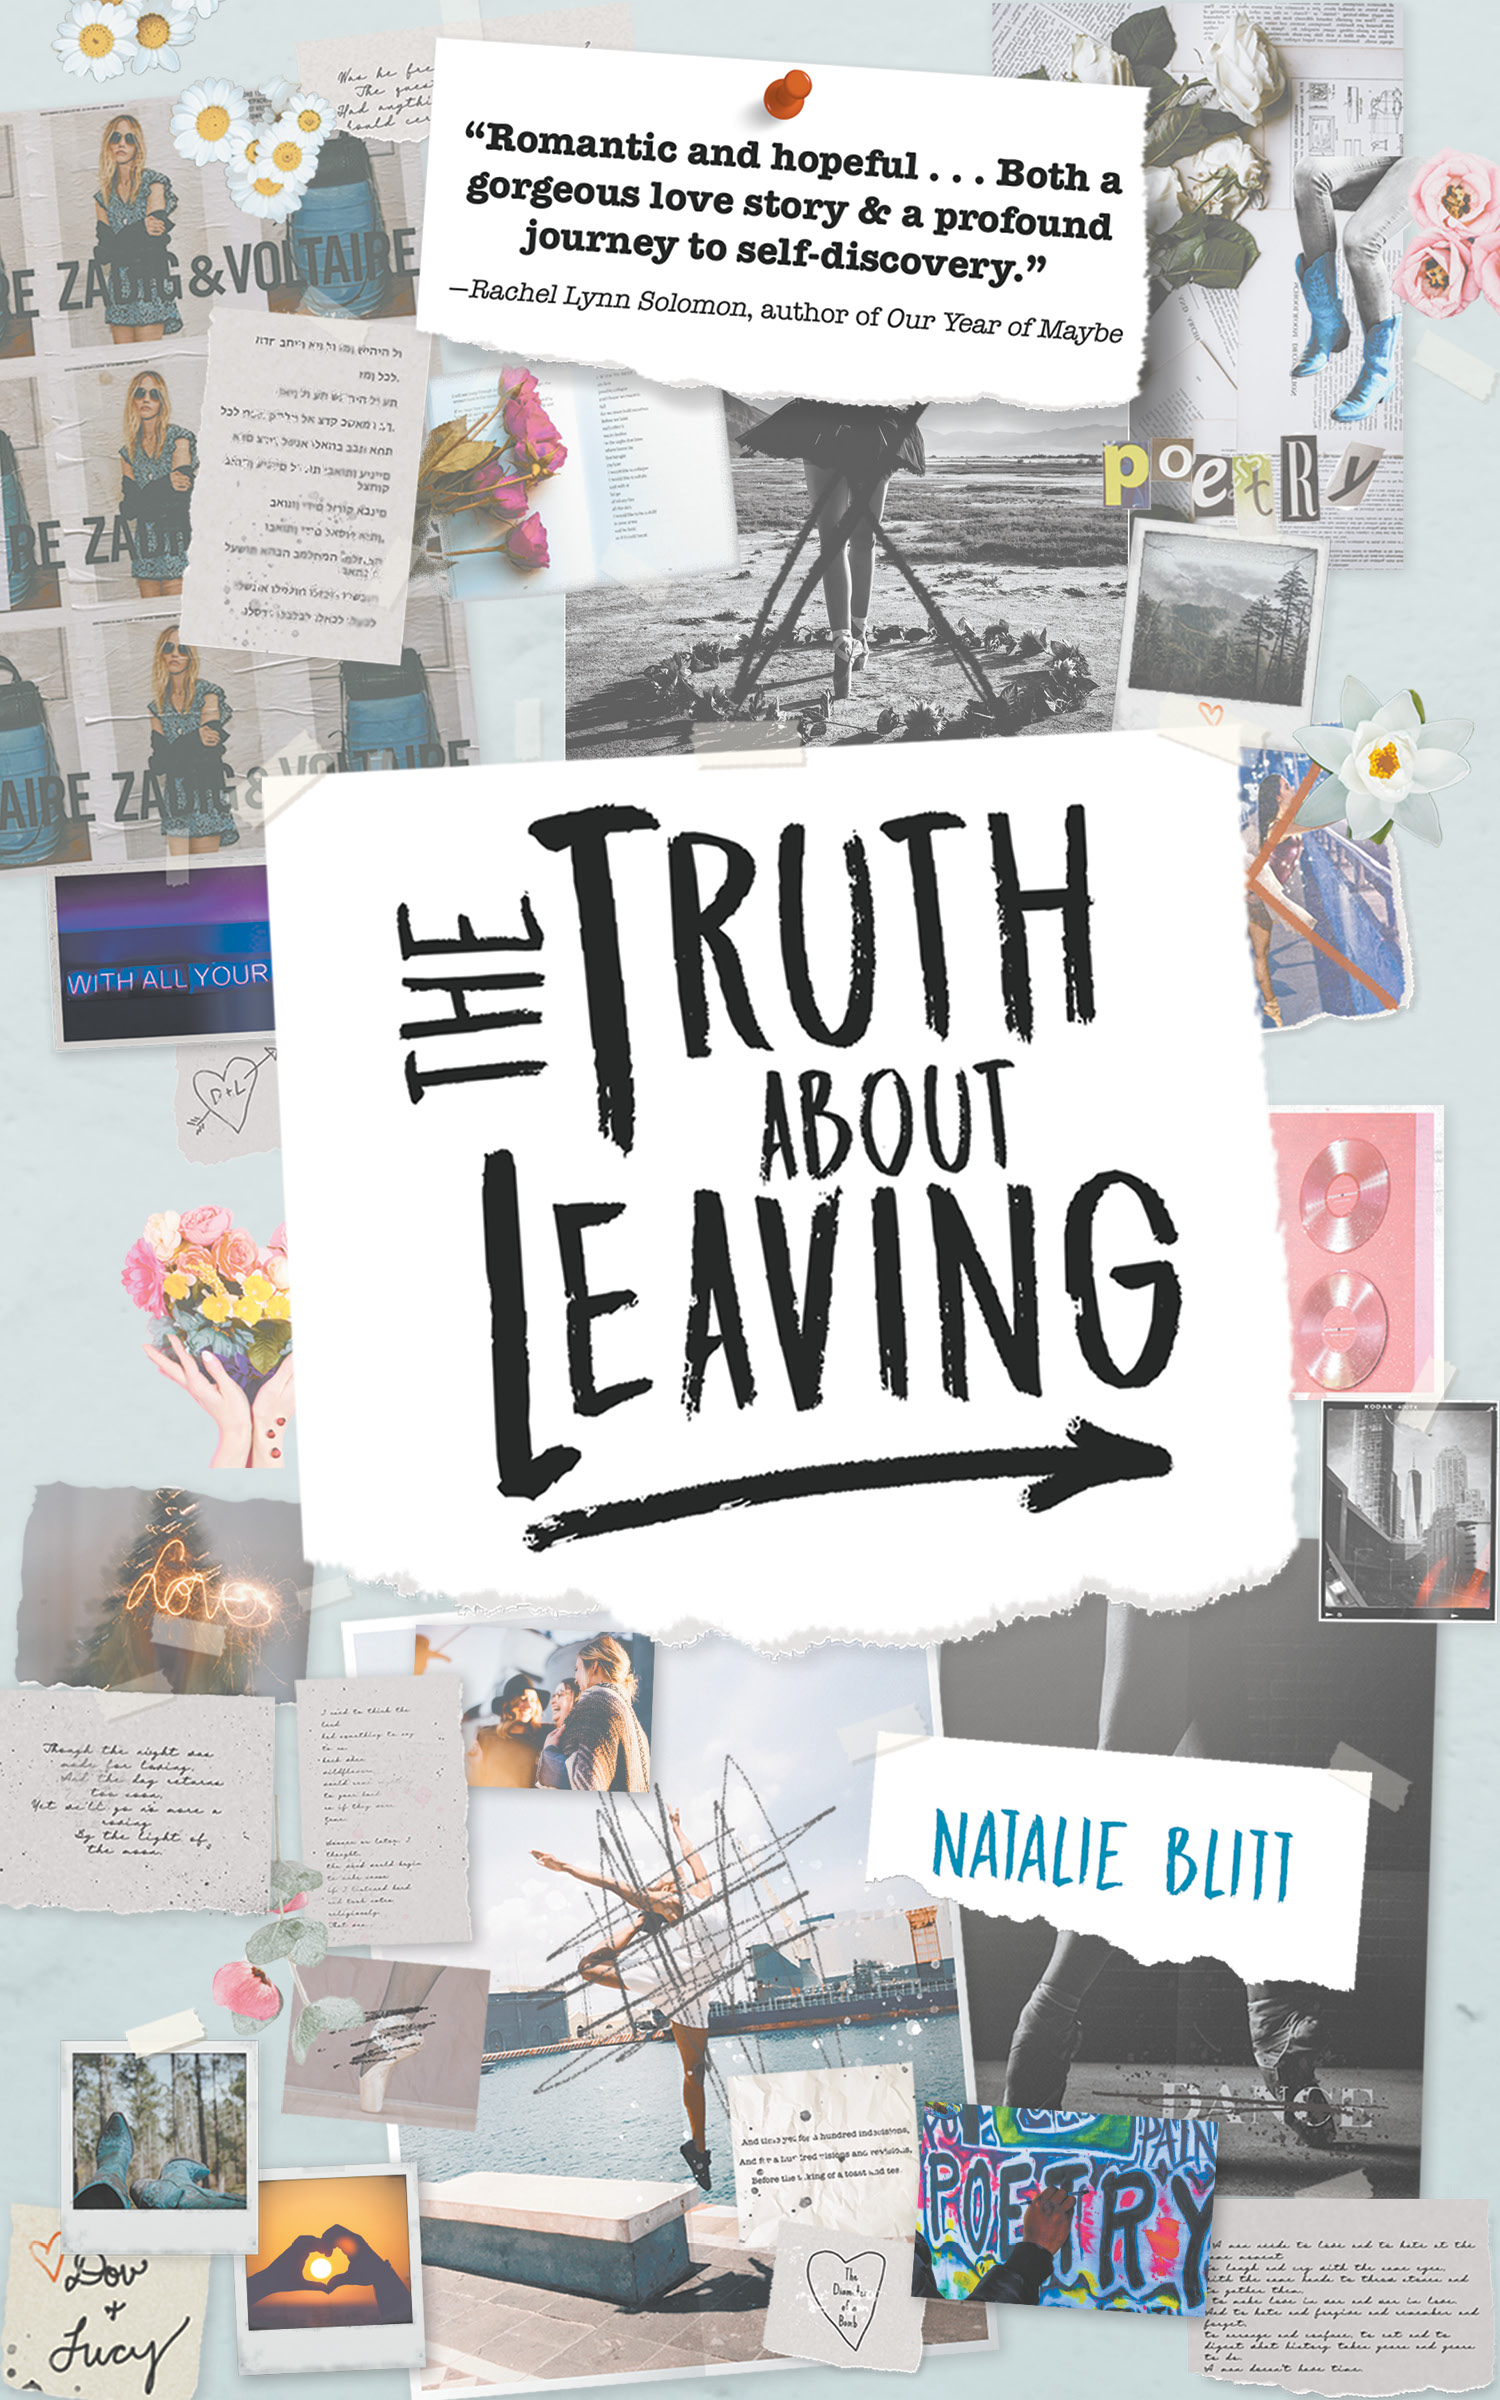 Blitt Natalie_The Truth About Leaving_Front Cover_12-10-18.jpg